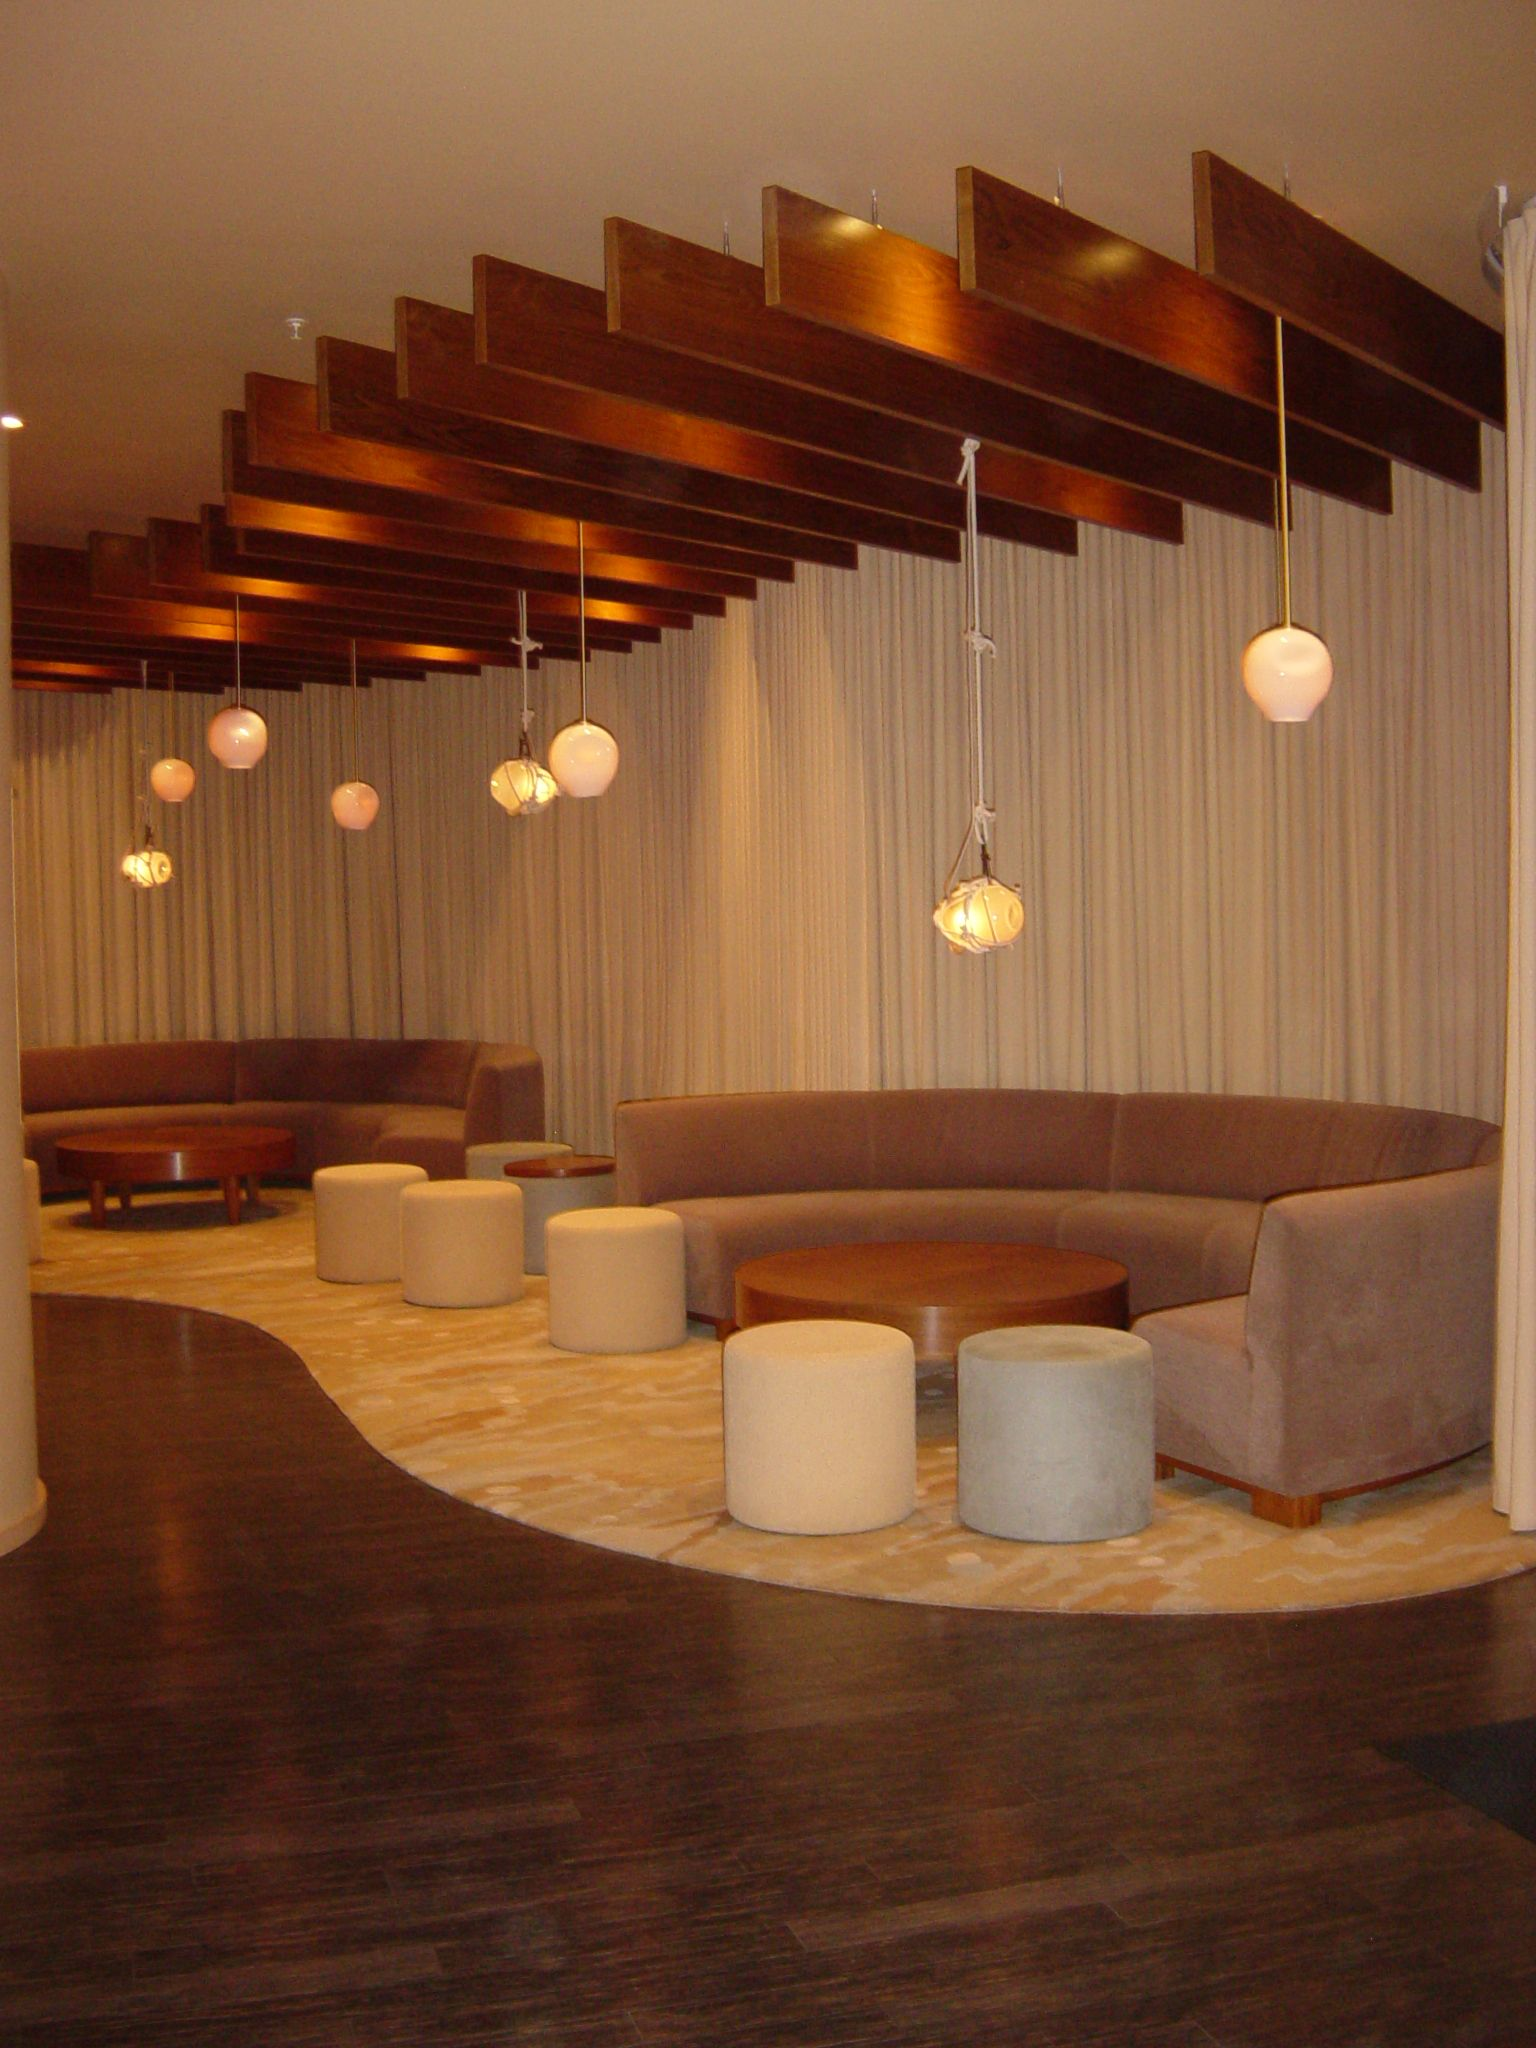 acoustical cloud panels images - this is a cool look with the